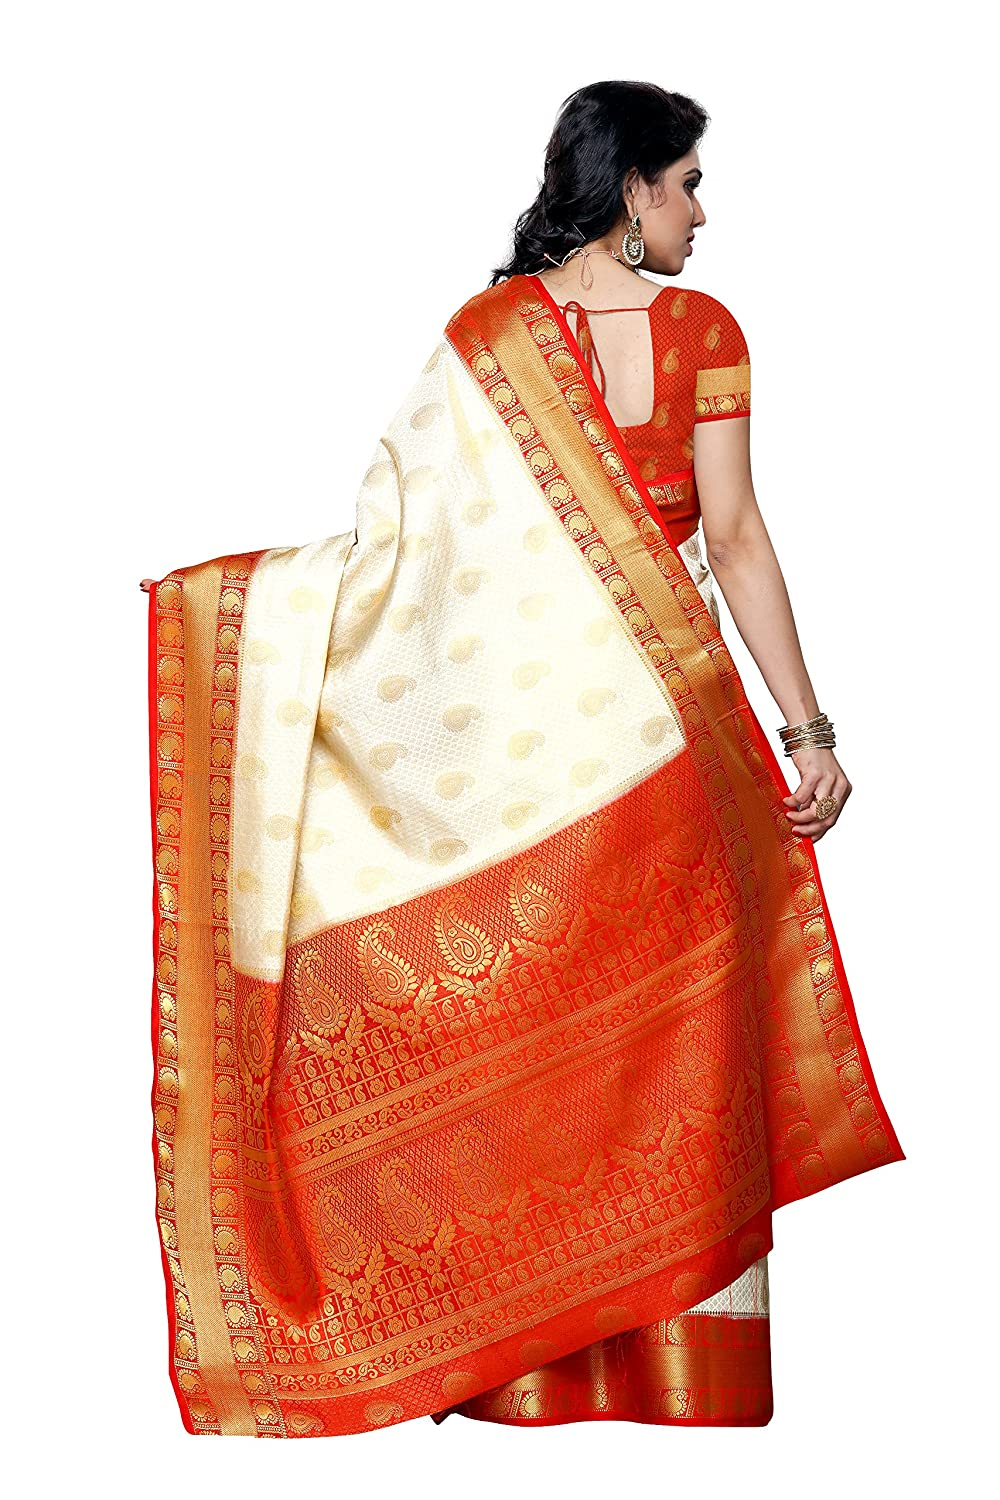 Mimosa womens silk saree 225 hwt redoff whitefree size amazon mimosa womens silk saree 225 hwt redoff whitefree size amazon clothing accessories fandeluxe Image collections